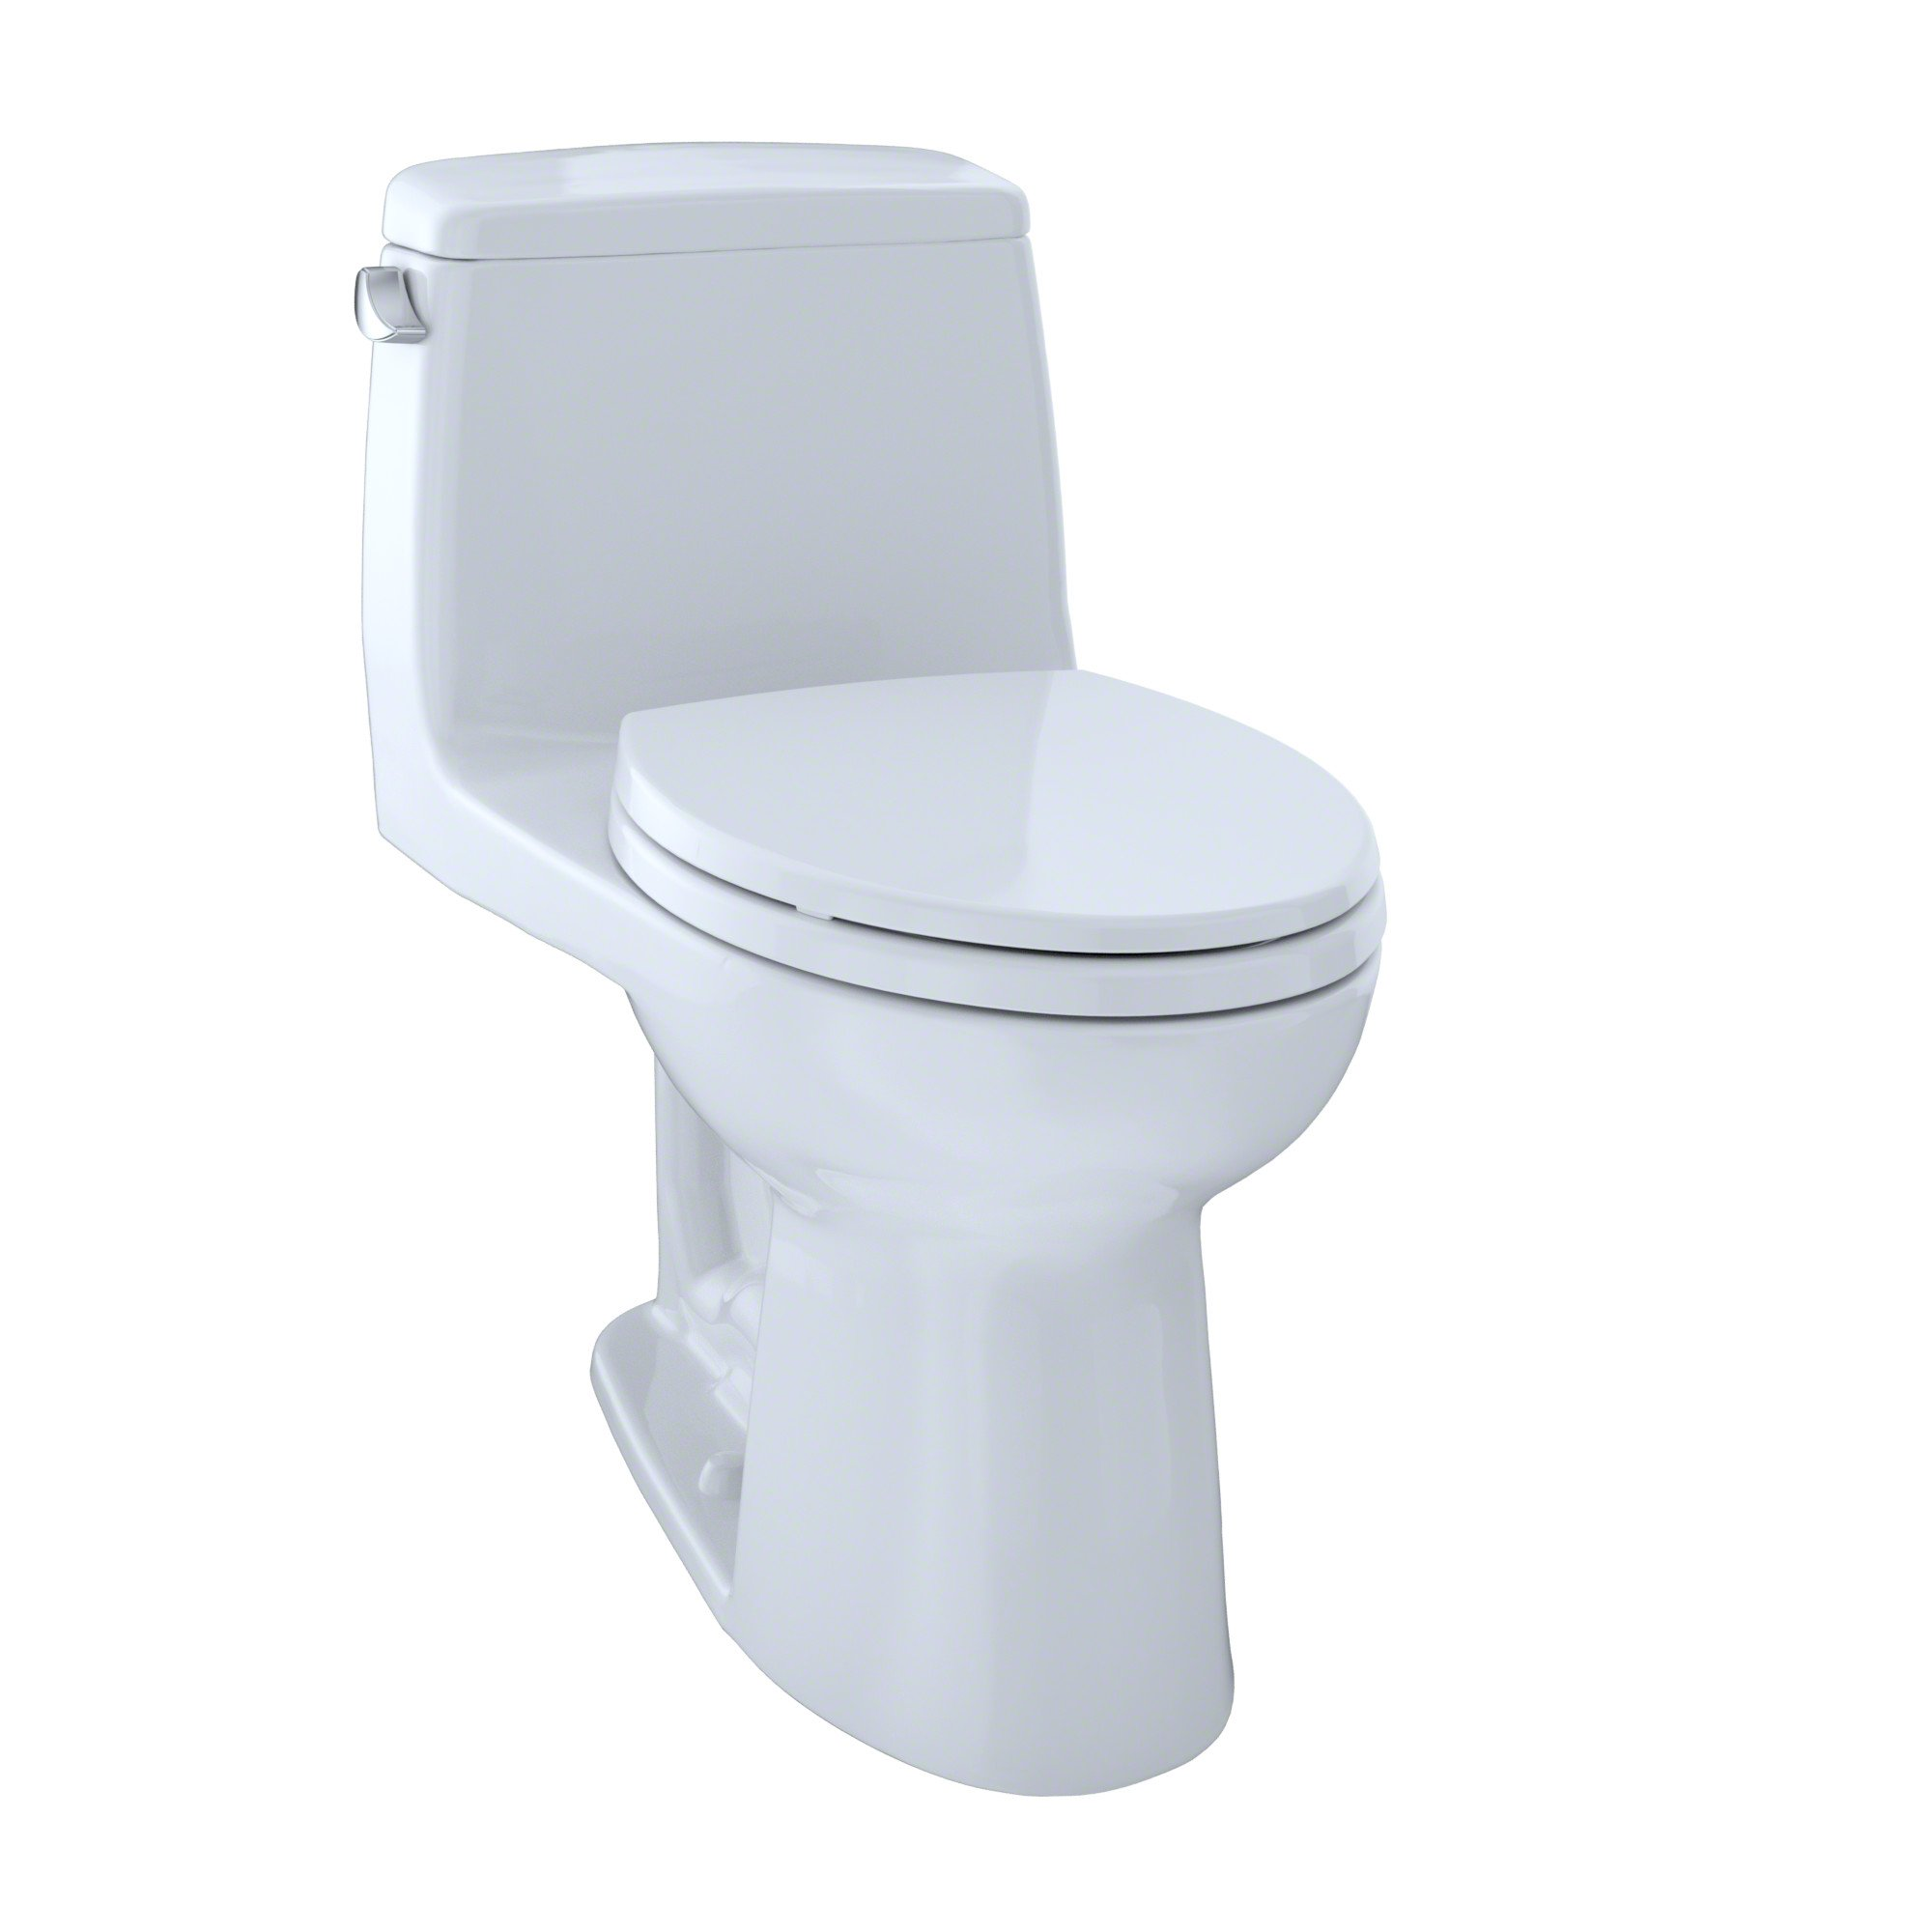 TOTO MS854114S#01 Ultramax Elongated One Piece Toilet, Cotton White by TOTO